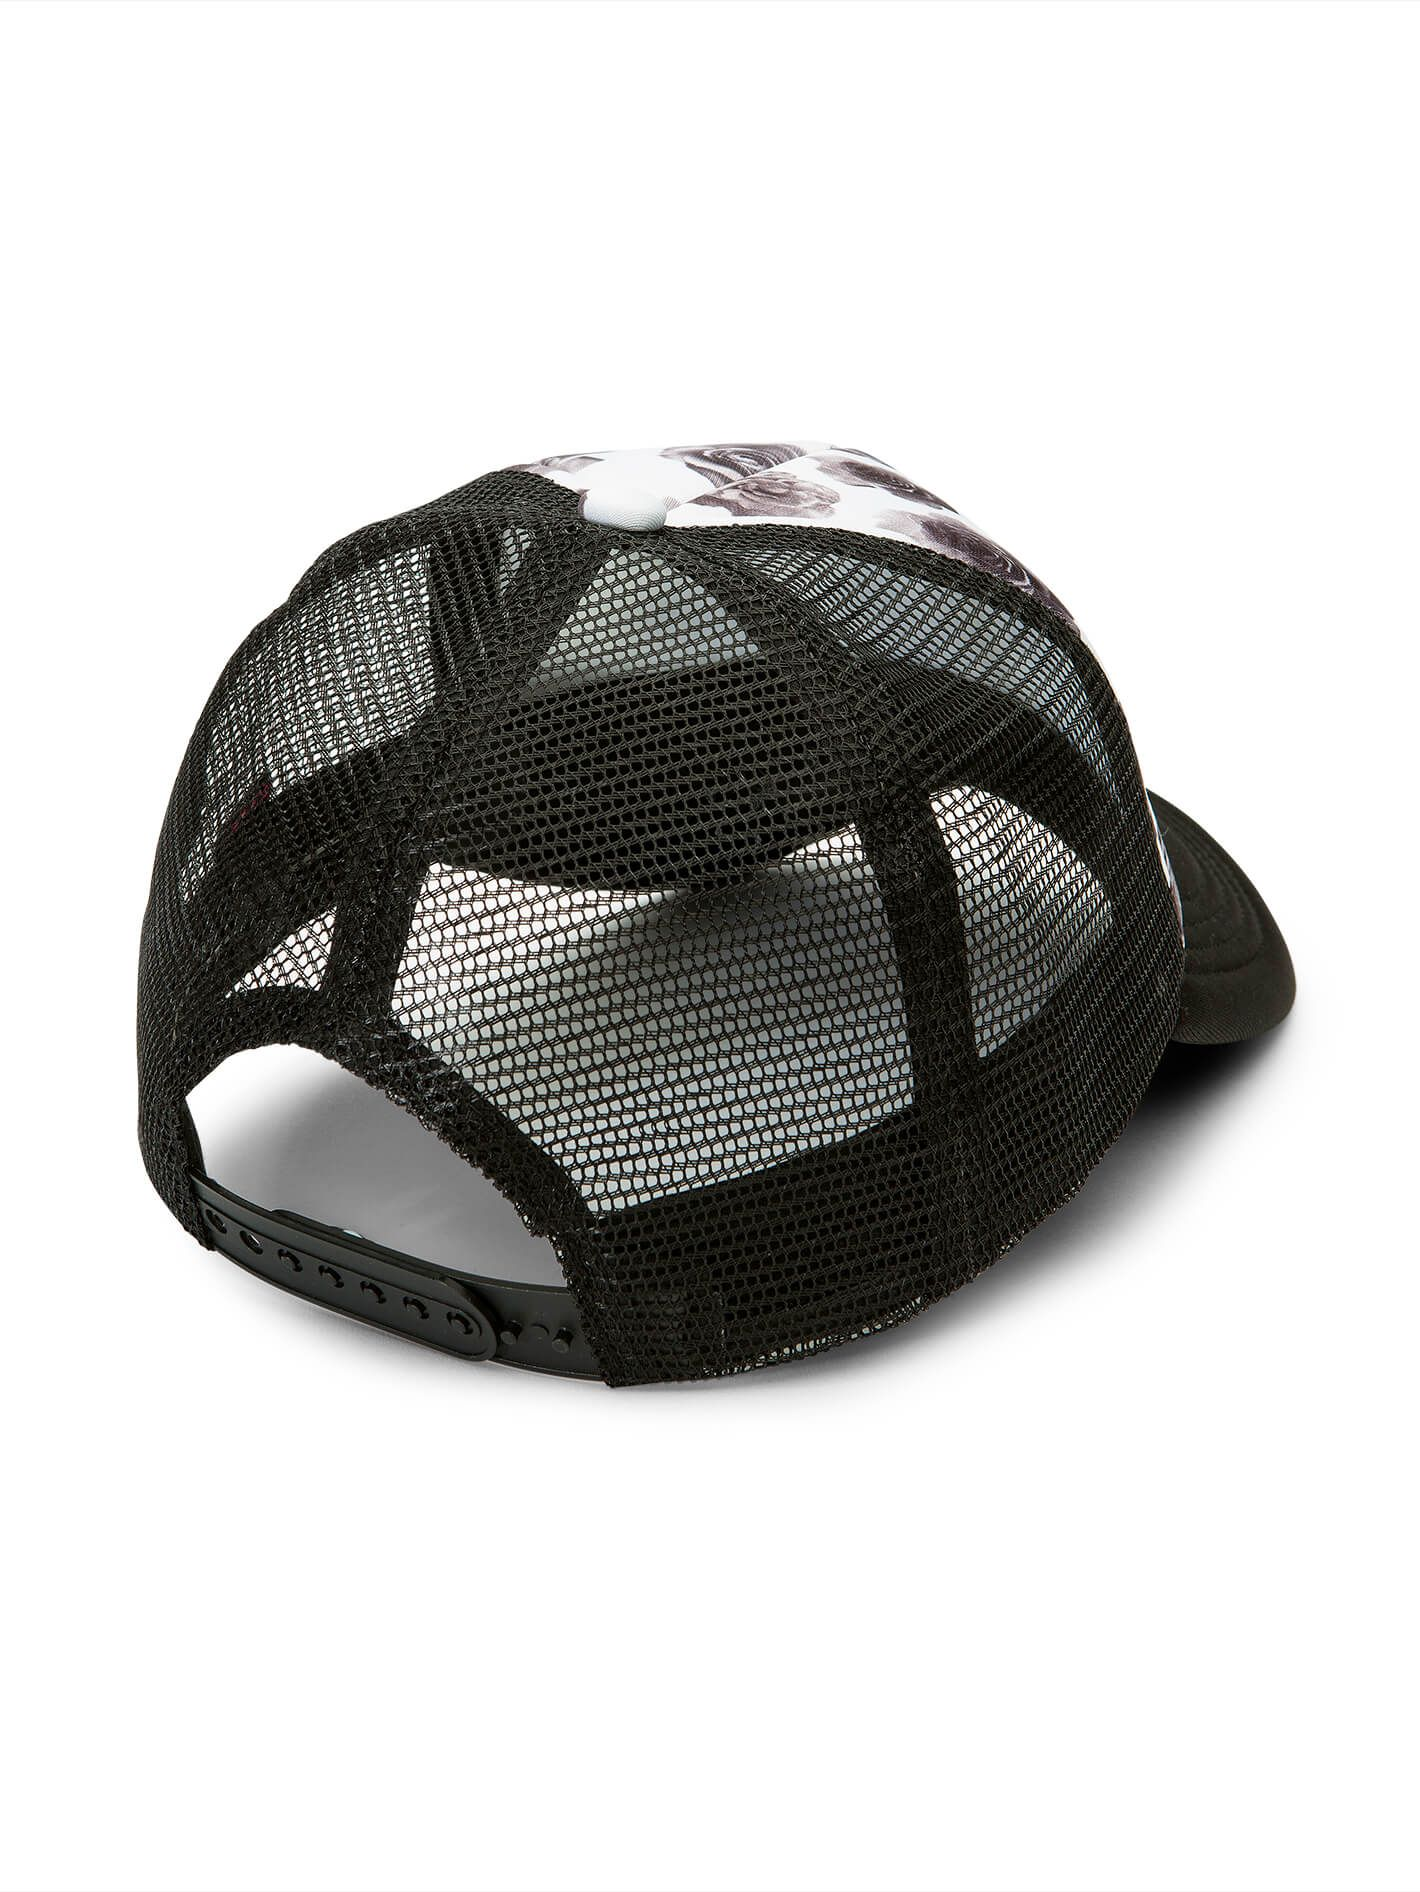 finest selection b2370 abafc wholesale volcom girl talk trucker hat womens 6aa68 96f92  cheapest volcom  ladies lost marbles hat in black white aef90 63690